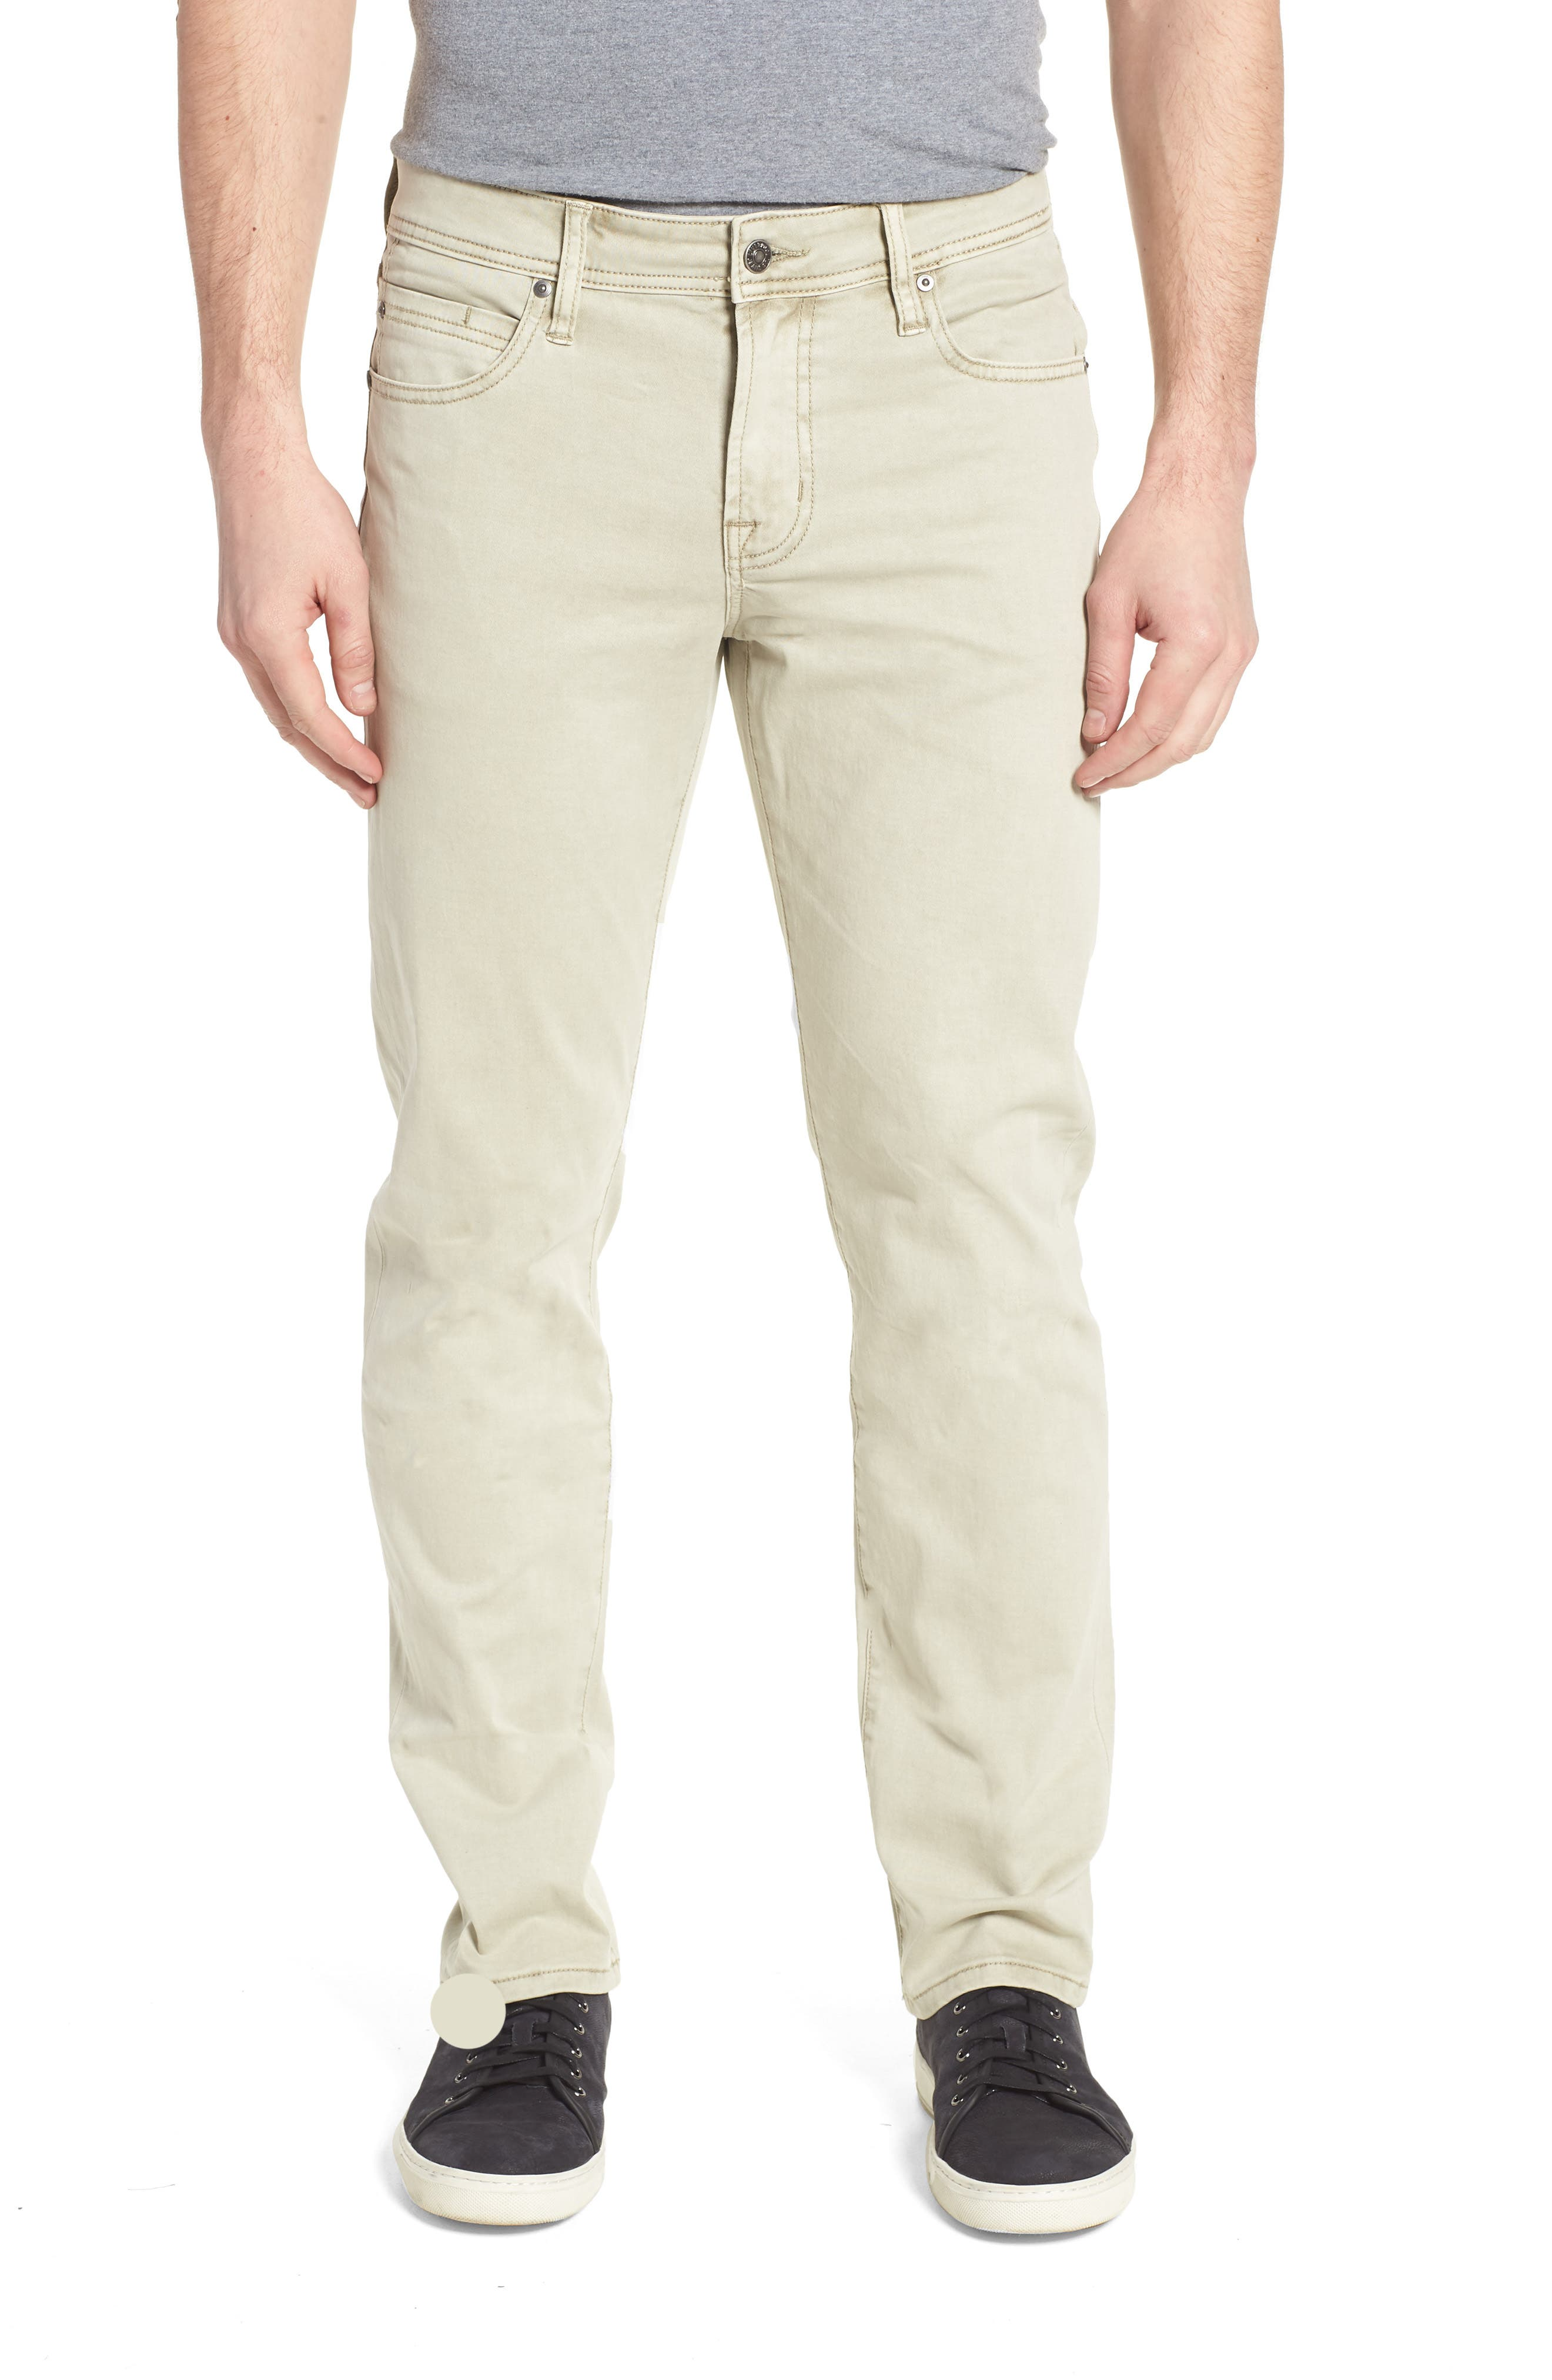 Jeans Co. Straight Leg Jeans,                         Main,                         color, Sandstrom